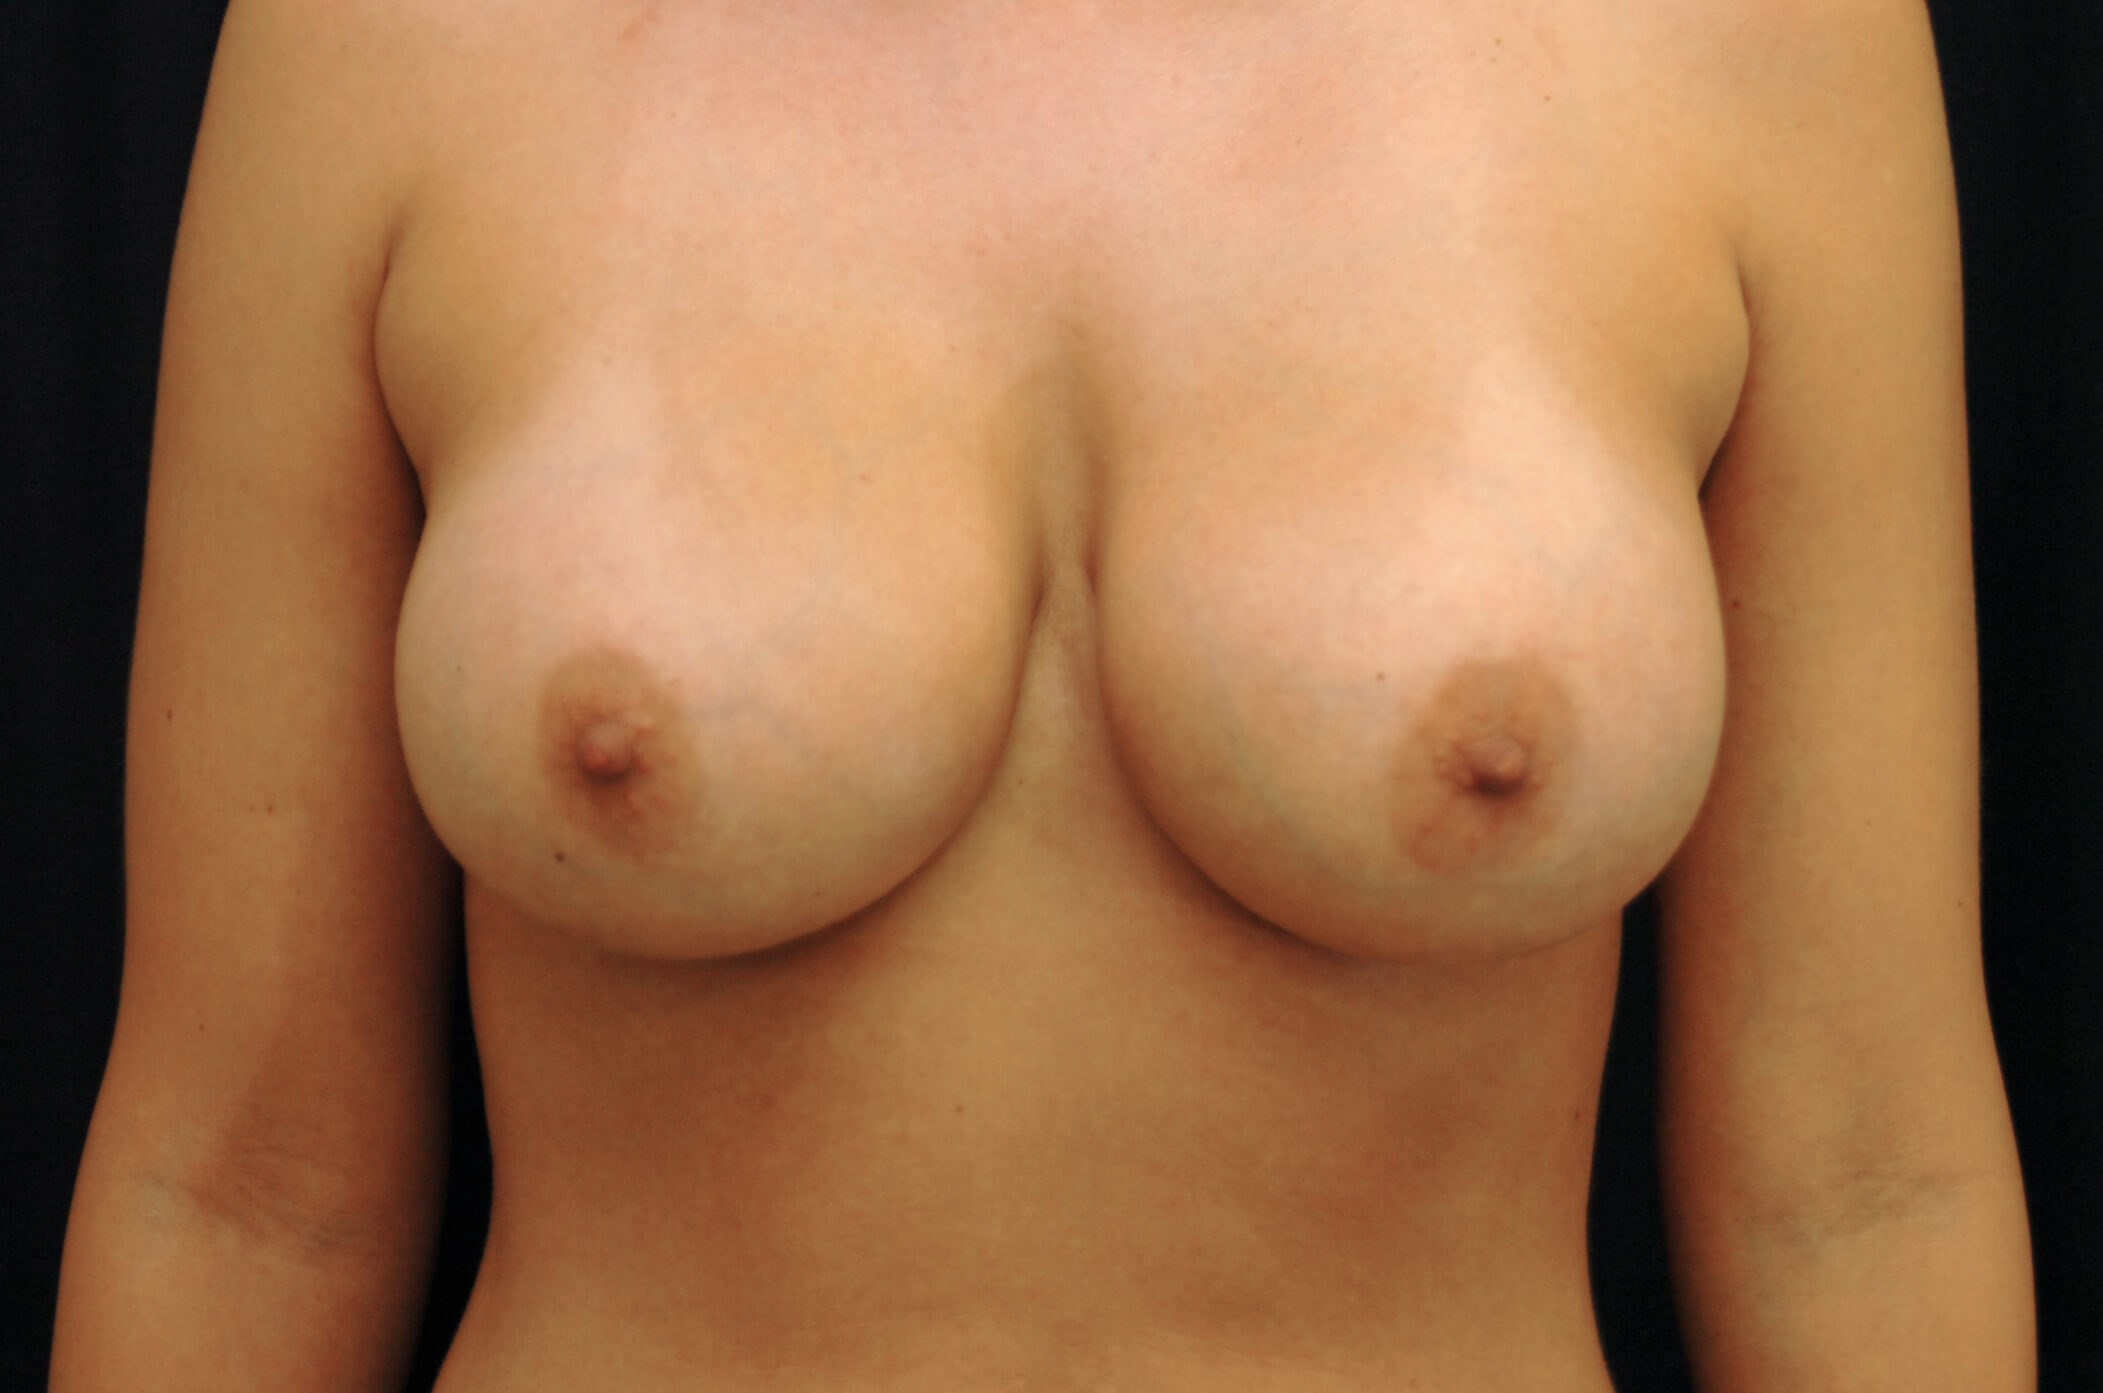 WOMAN IN DALLAS TEXAS HAS BREAST AUGMENTATION REVISION WITH NEW BREAST IMPLANTS